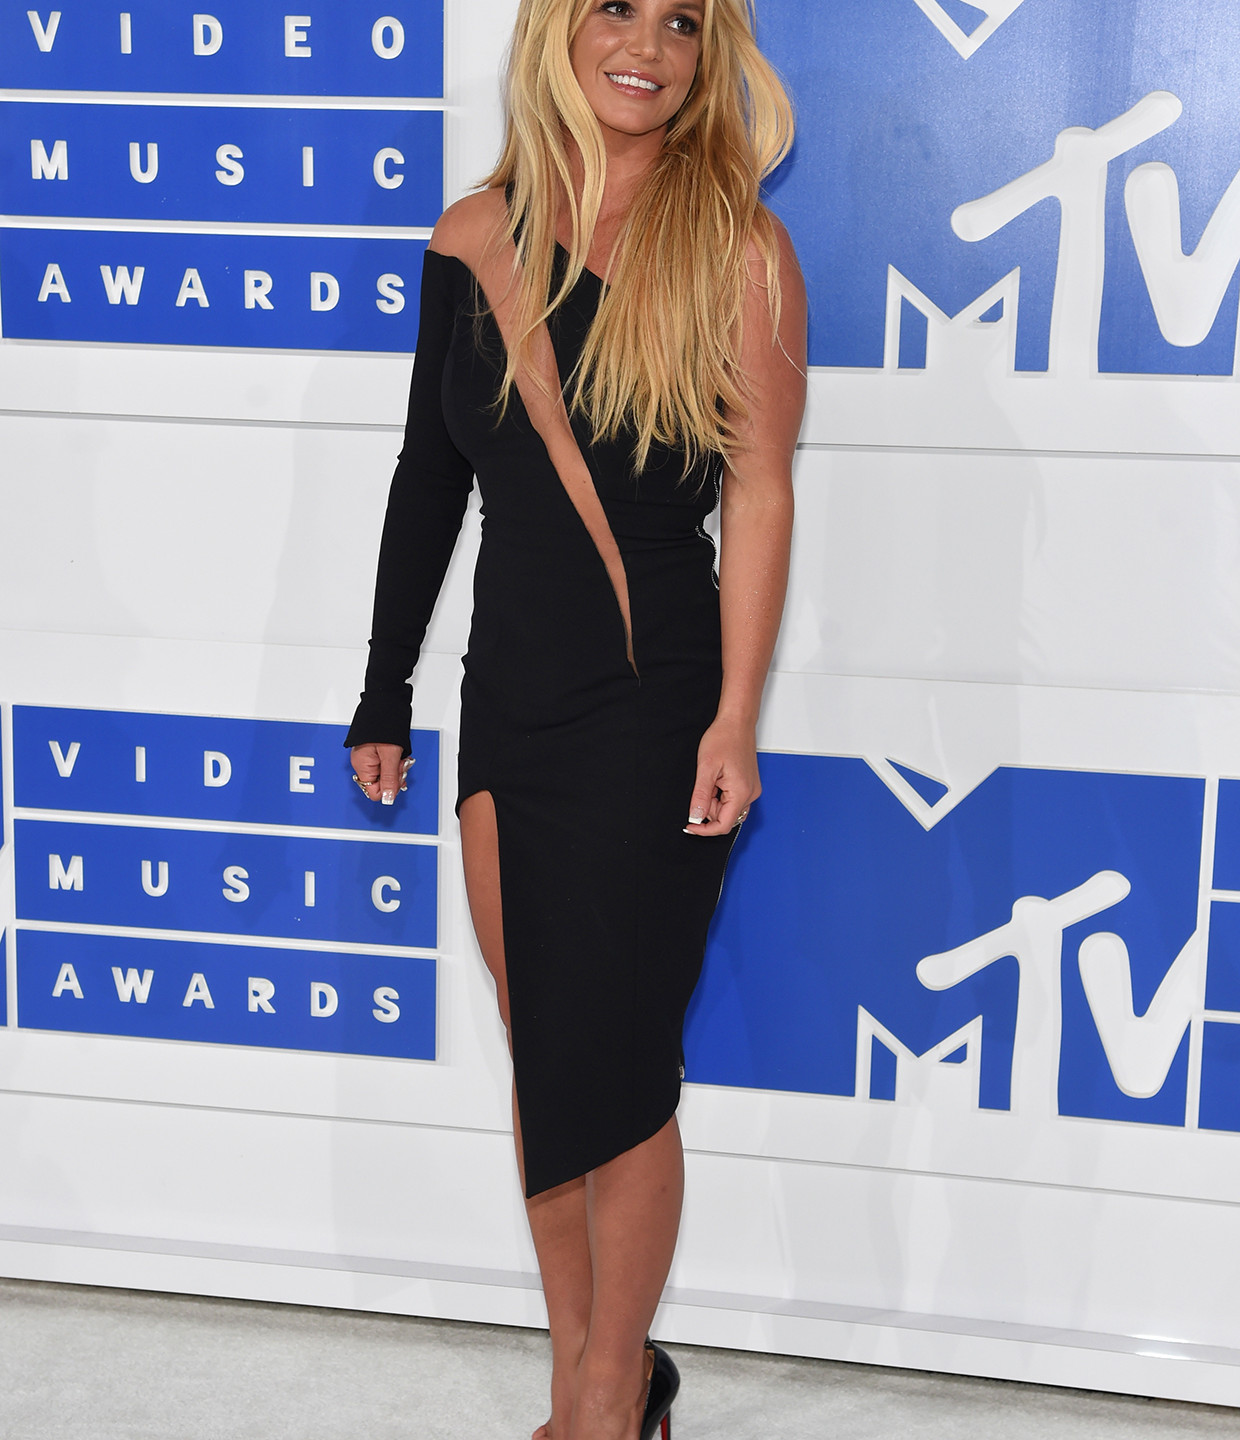 britney-spears-mtv-vmas-red-carpet-2016-billboard-1240